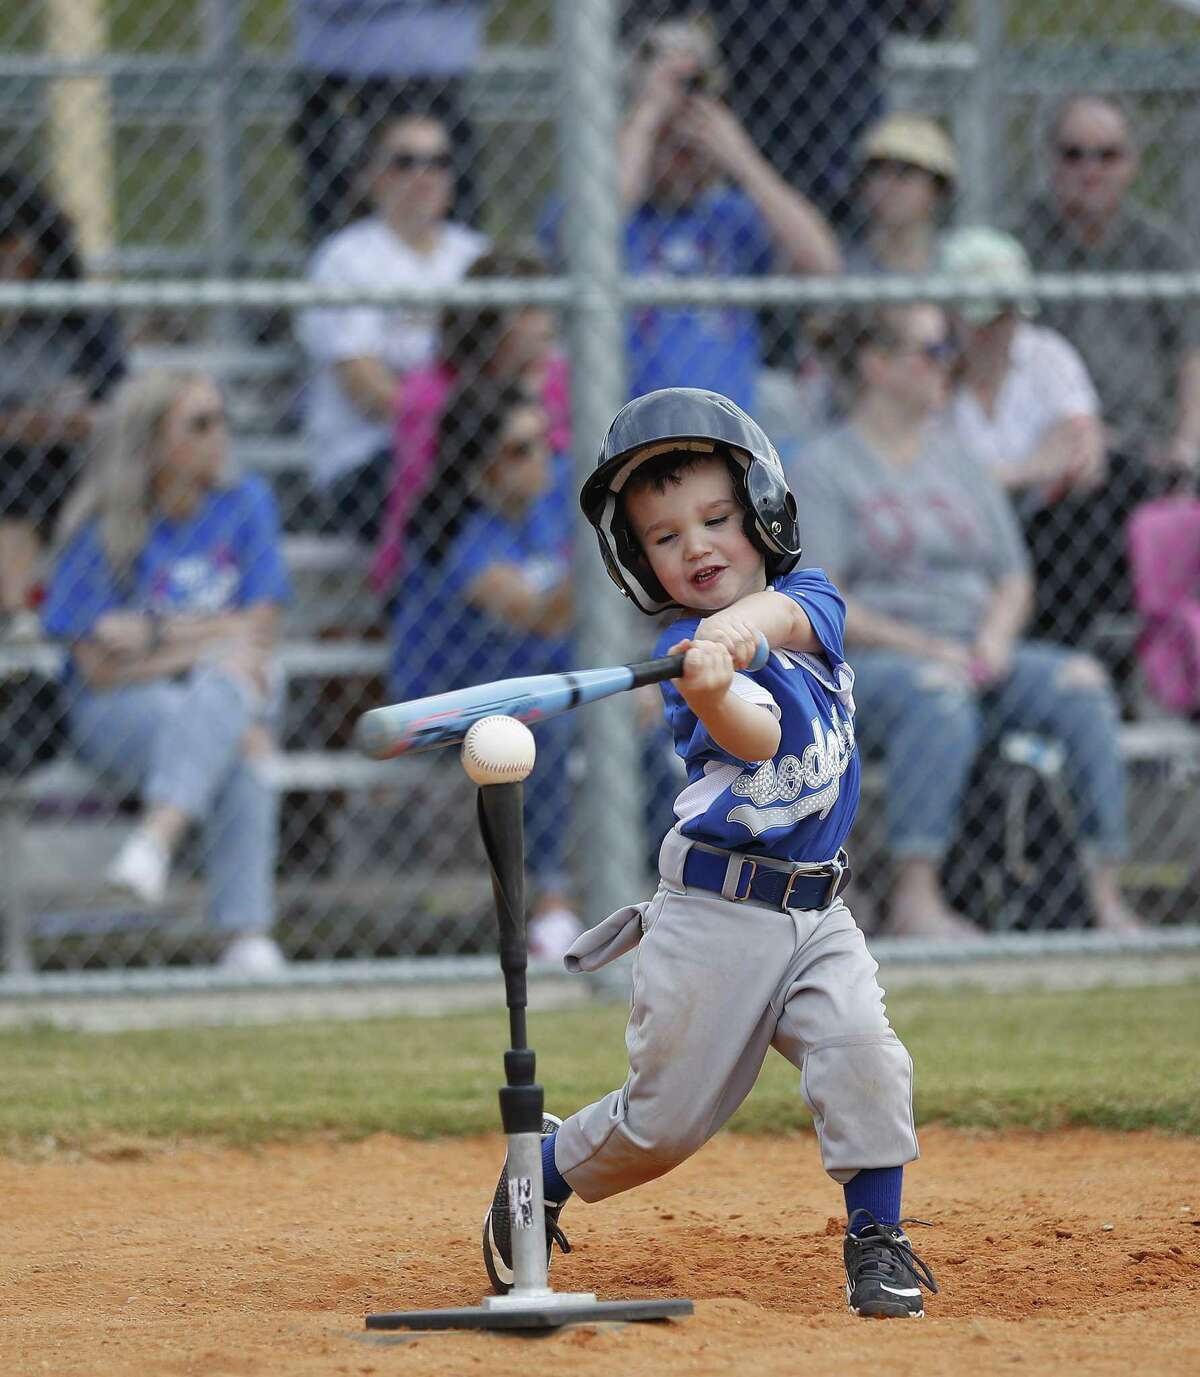 Eli Crull, 4, hits the ball off the tee during Deer Park PONY baseball games at Spencerview Athletic Complex, Saturday, March 30, 2019, in Deer Park. First the Deer Park PONY baseball league had to cancel games because of bad weather. Then came the ITC chemical fire, which cancelled another full week of games and Opening Day.